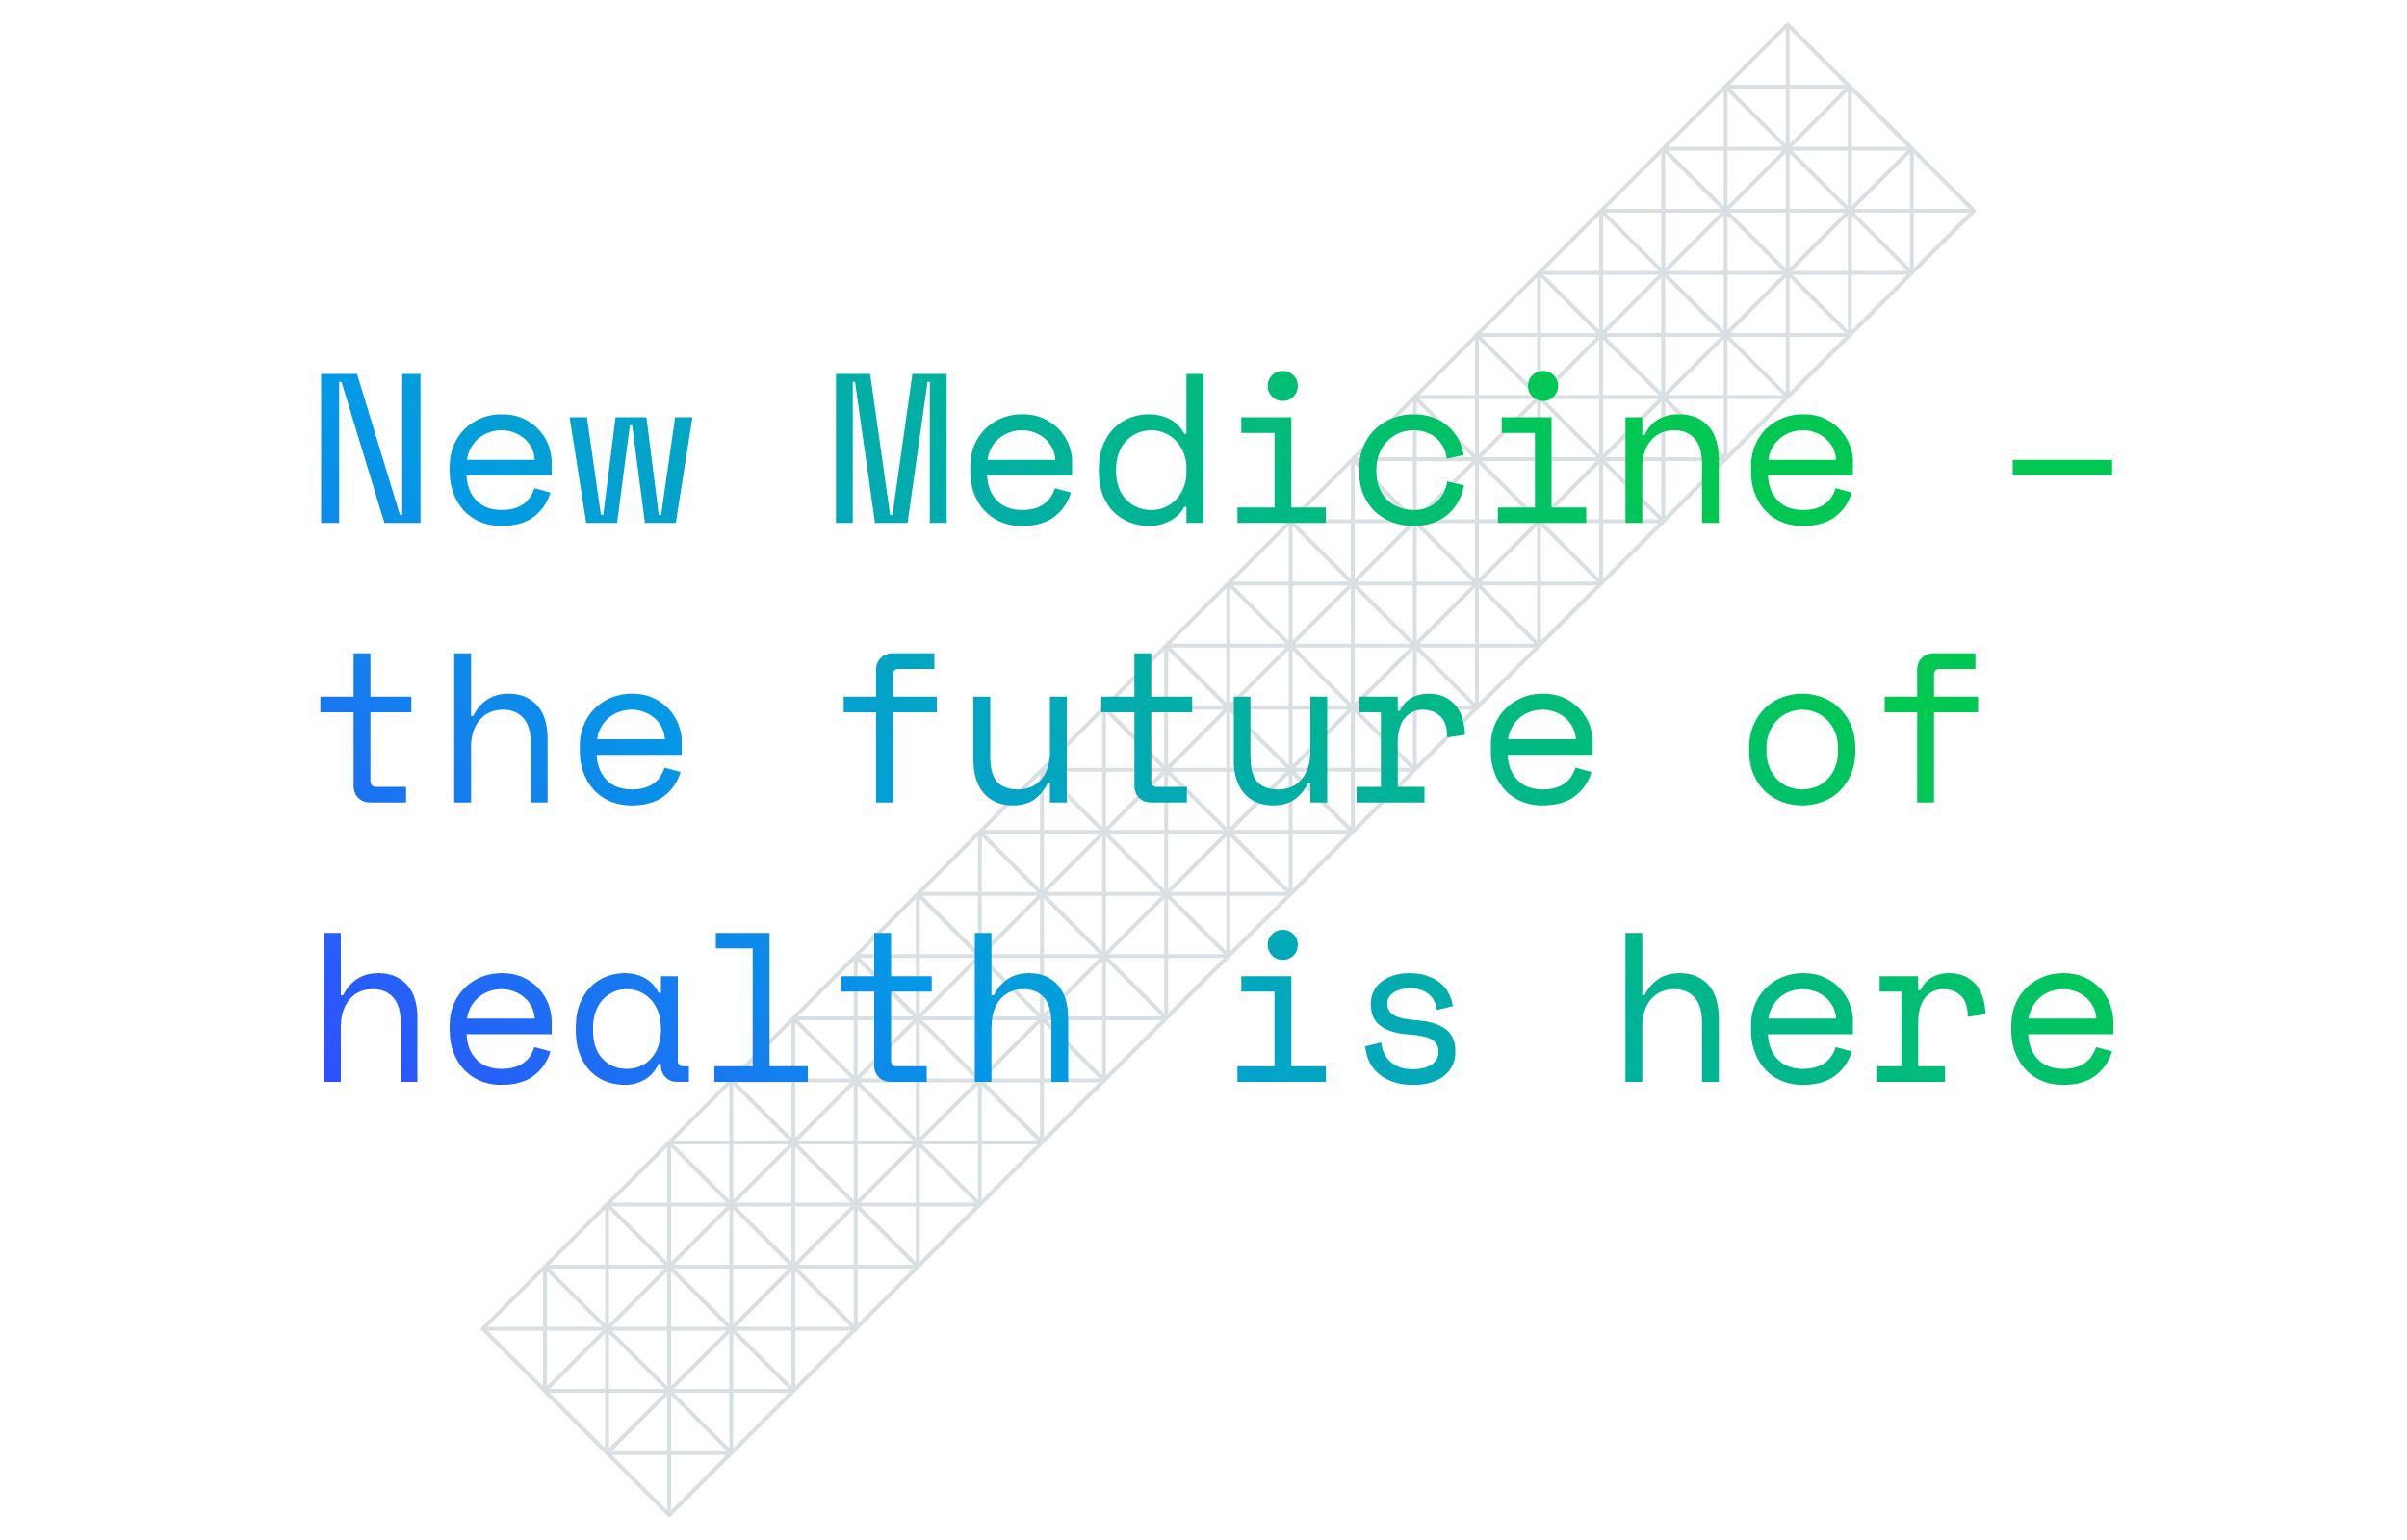 New-Medicine-Identity-by-Ian-Whalley.png